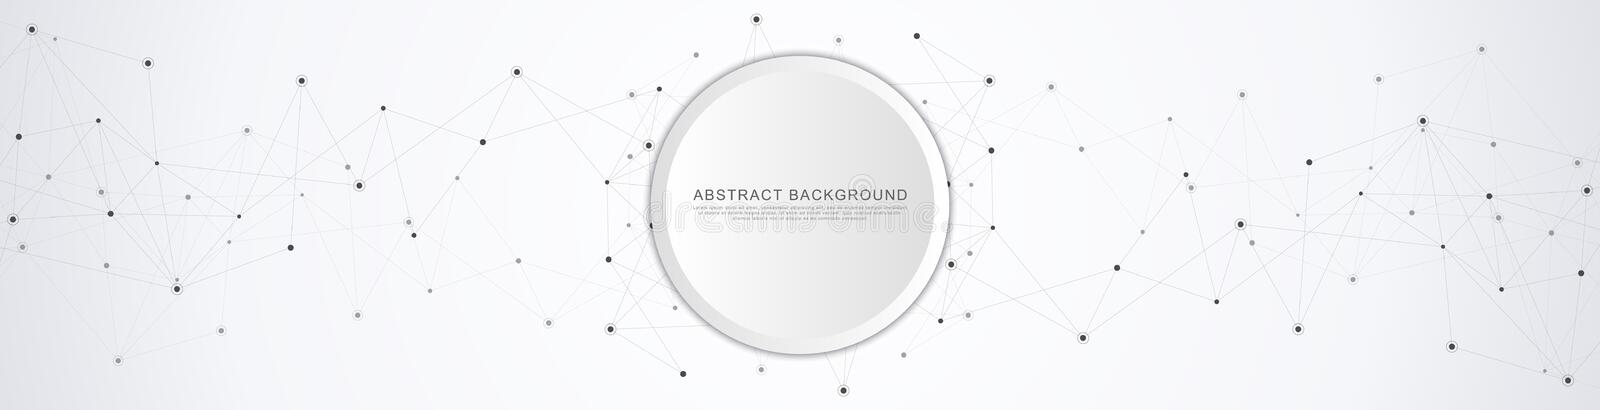 Vector banner design. Geometric abstract background with connected dots and lines. Molecular structure and communication. Digital royalty free illustration